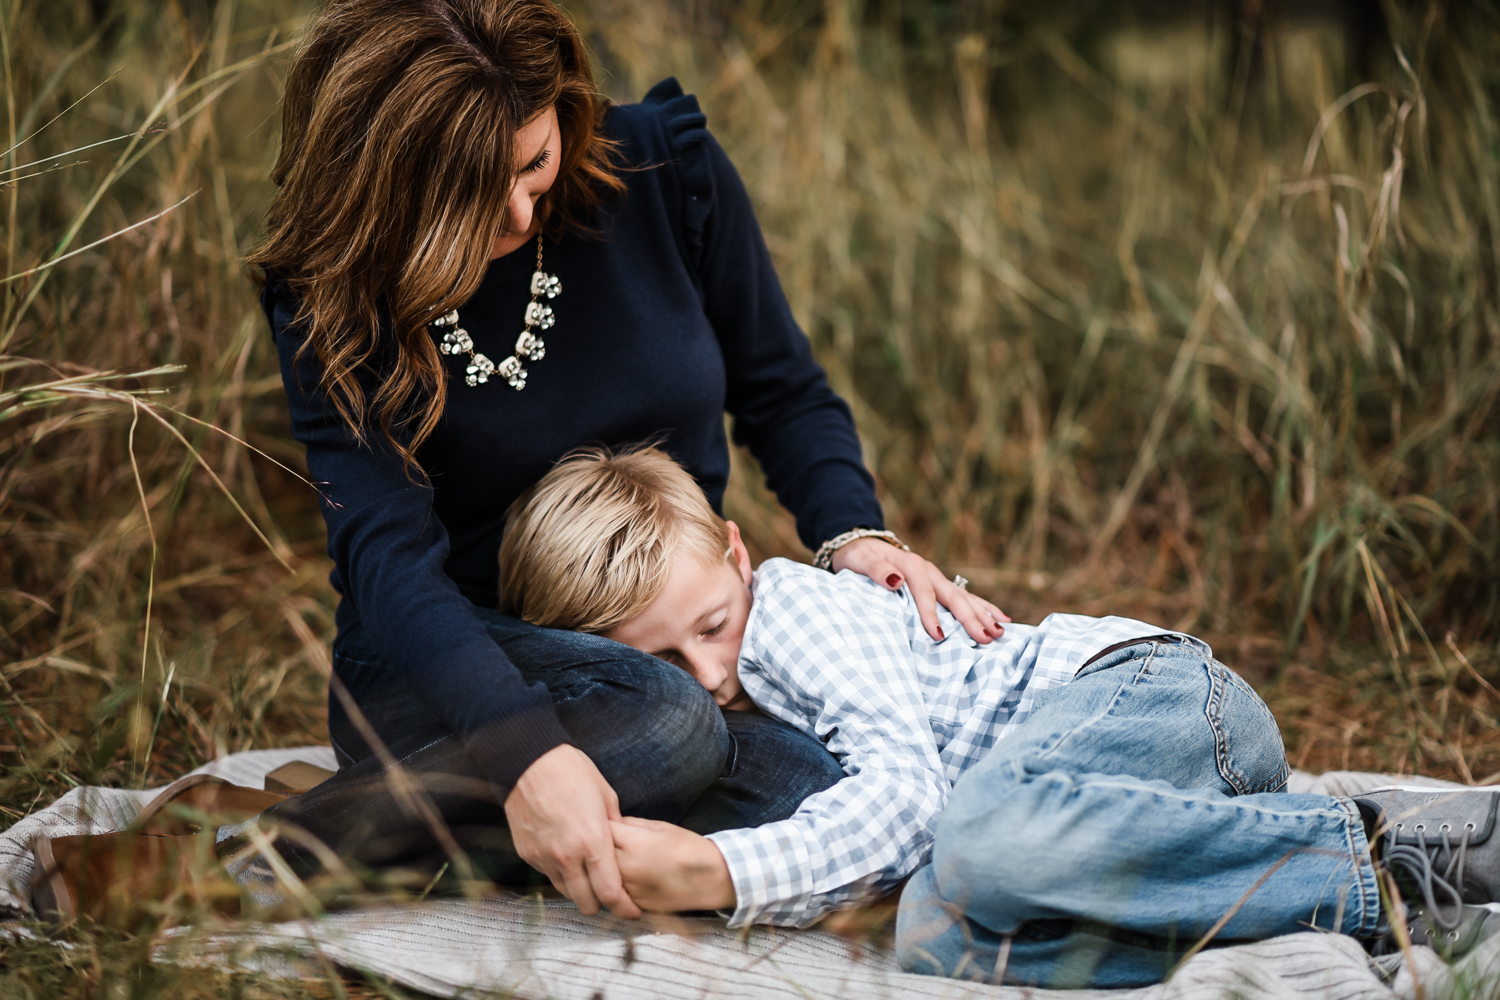 Sweet Nest Photography - Katy Texas - Family Lifestyle Photography Session-3.jpg